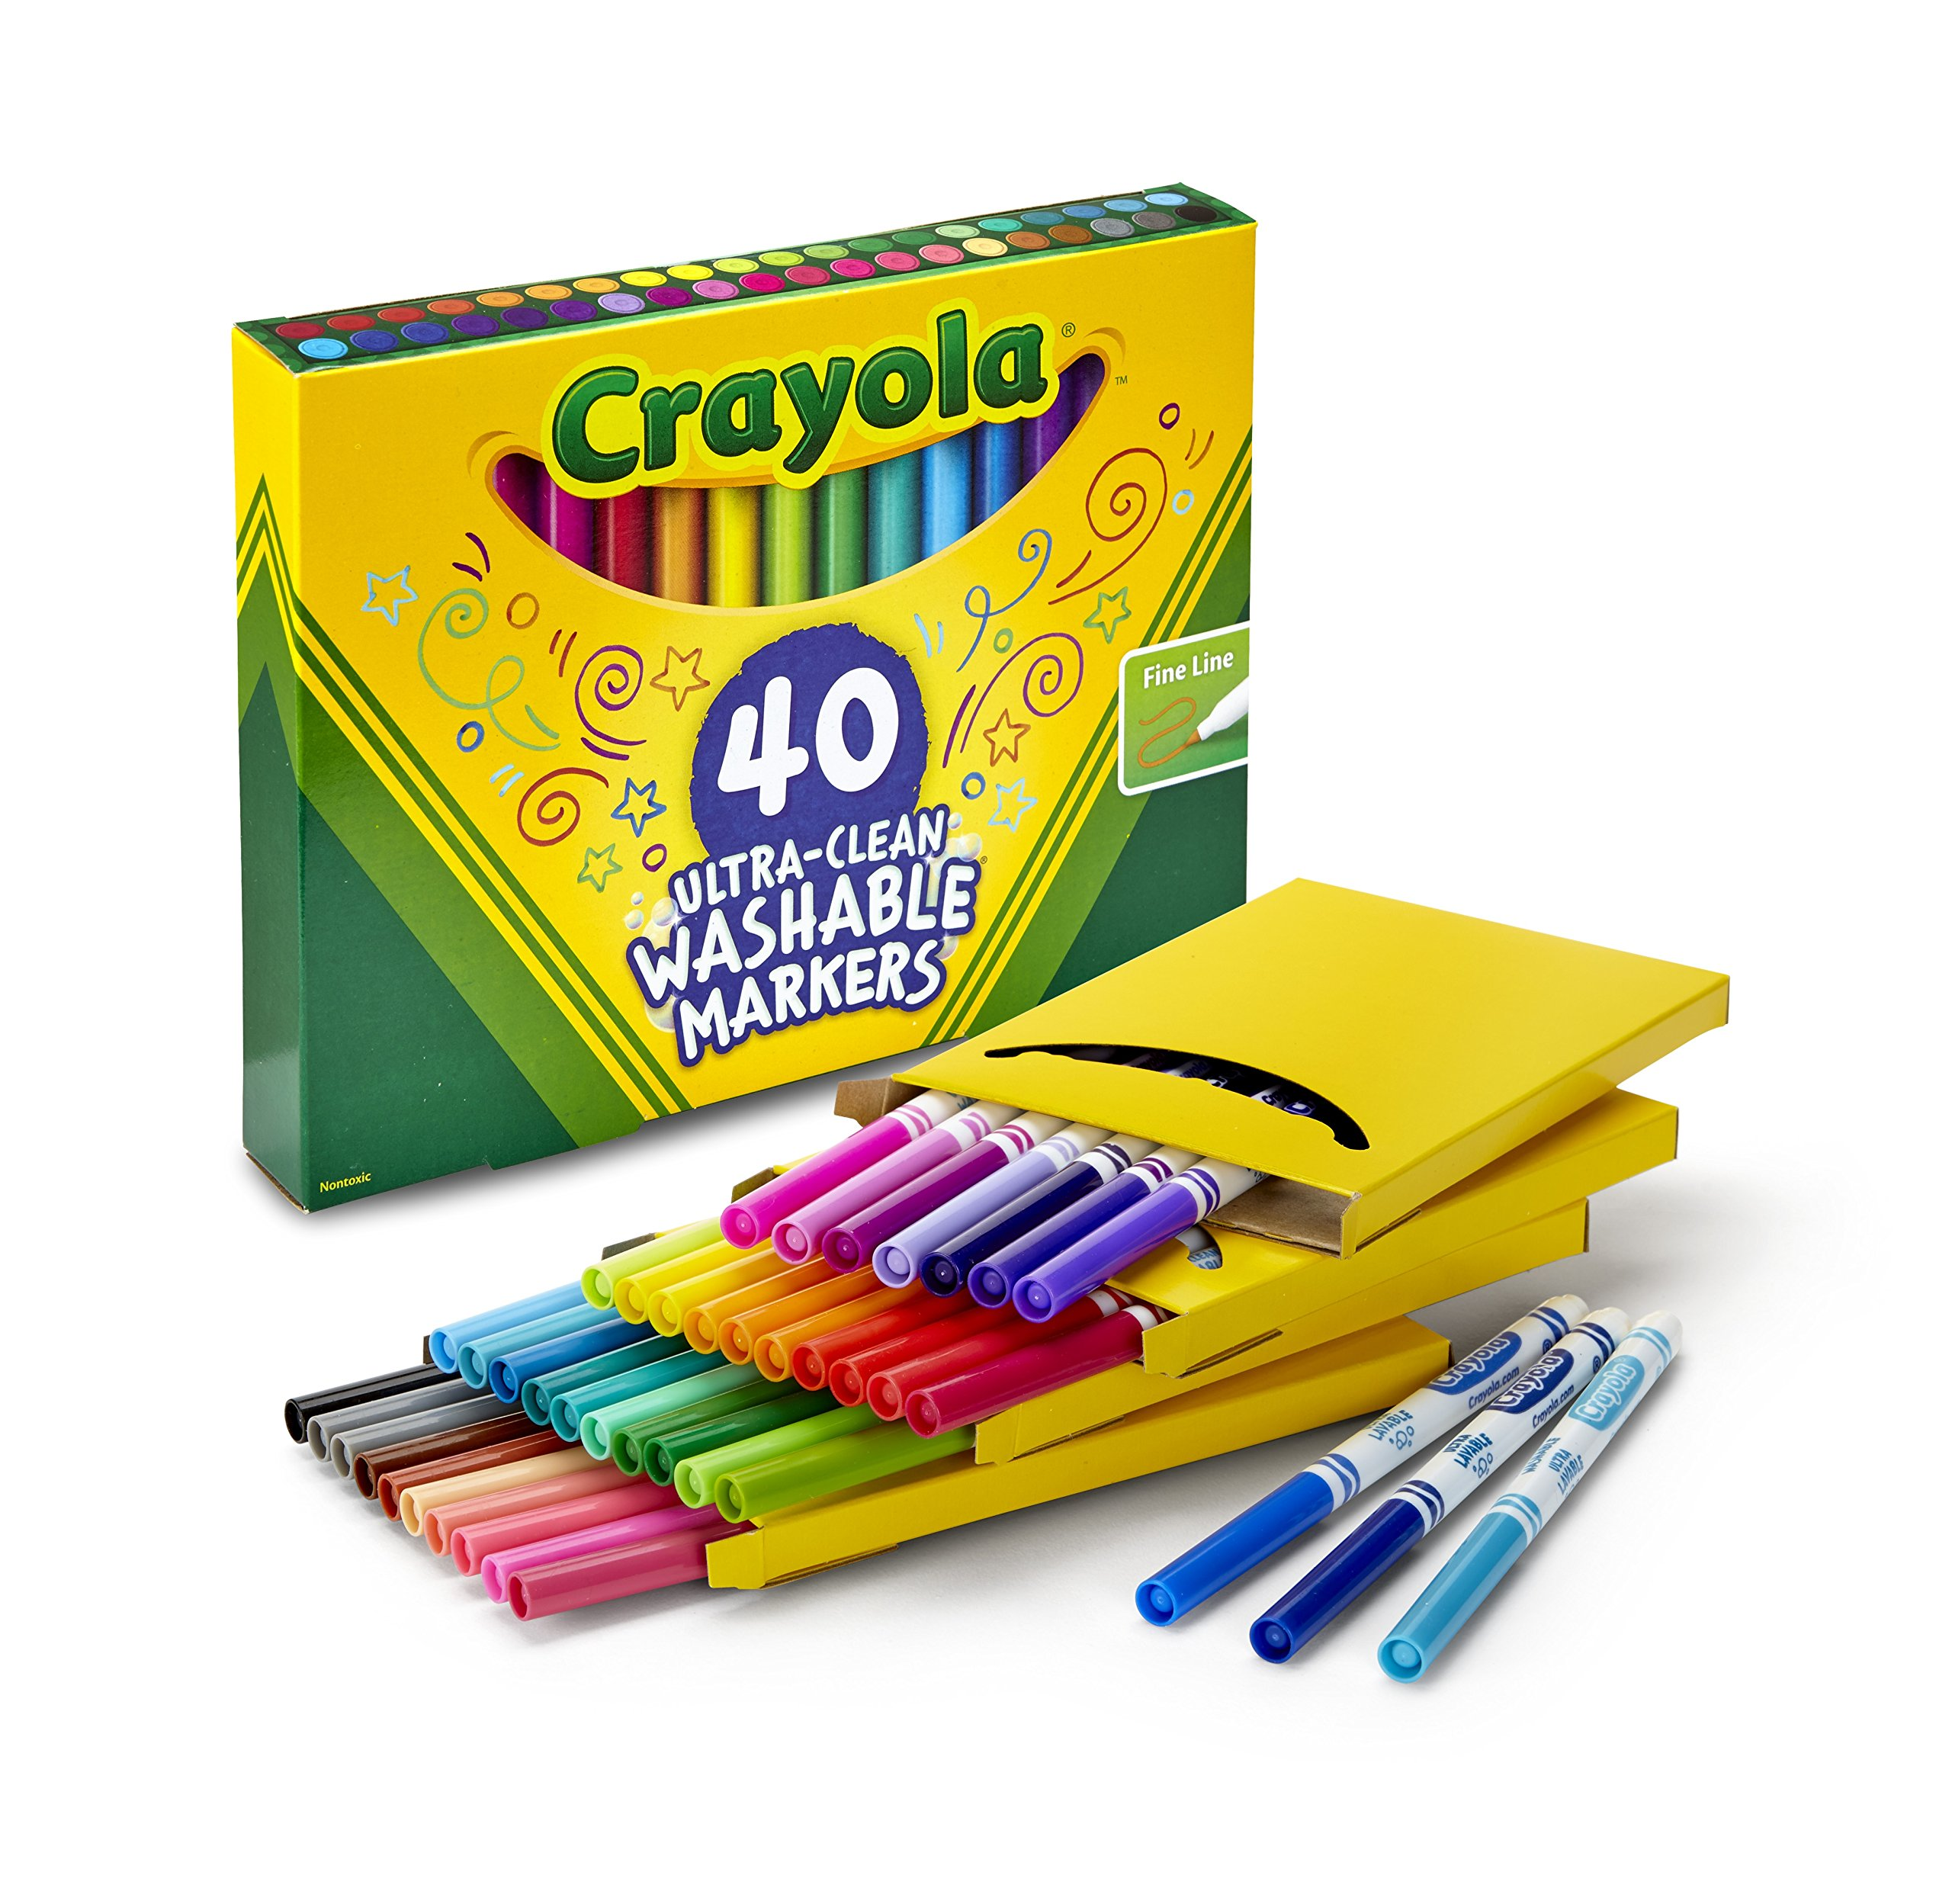 Crayola Ultra-Clean Washable Markers, Fine Line, 40 Count by Crayola